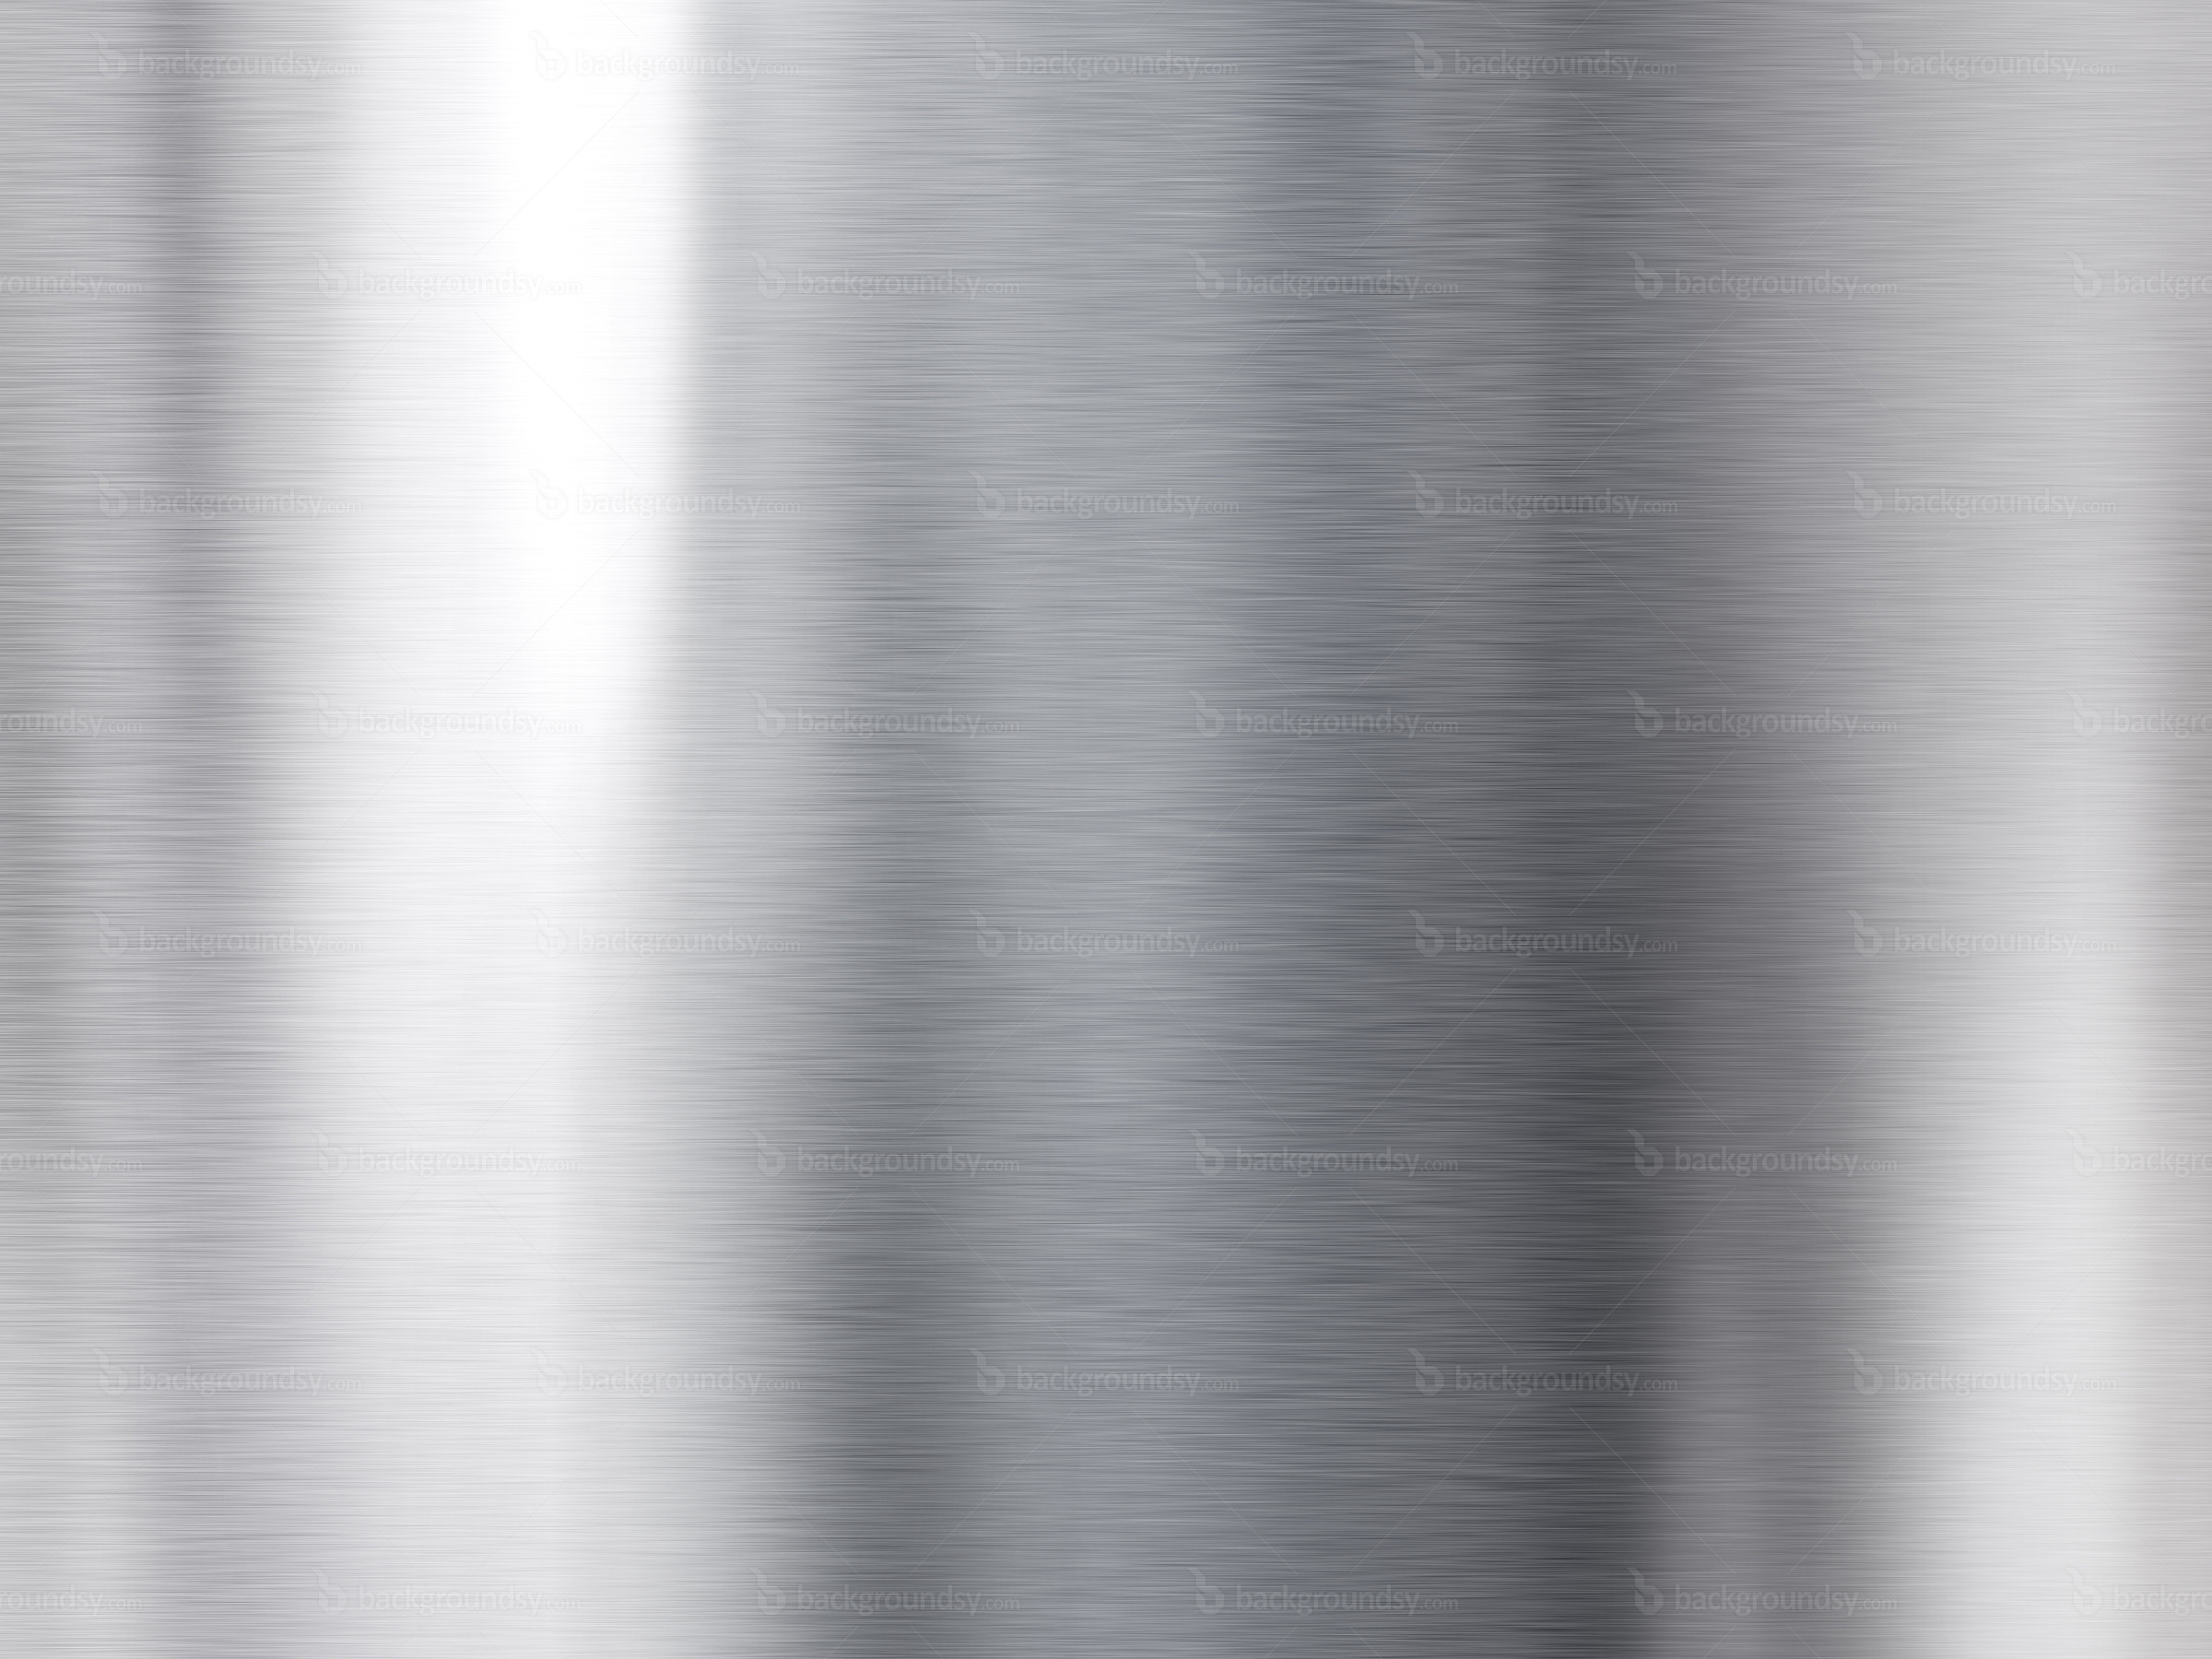 Shiny Metal Texture Seamless